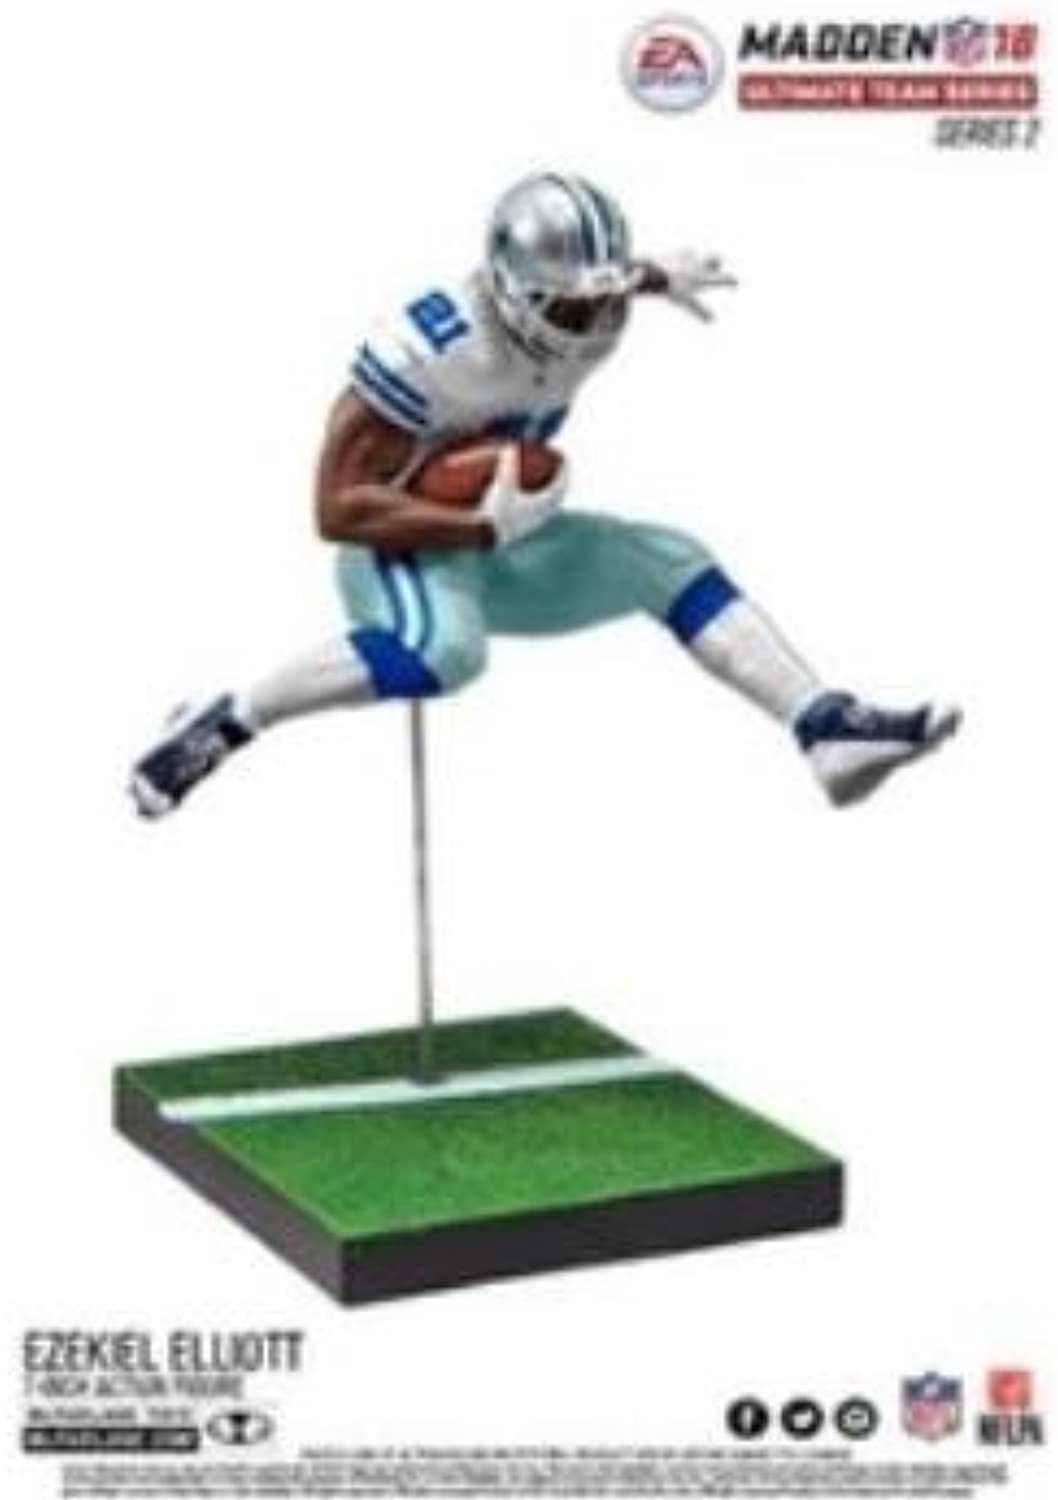 McFARLANE MADDEN 18 ULTIMATE TEAM SERIES 2 EZEKIEL ELLIOTT FIGURE DALLAS COWBOYS